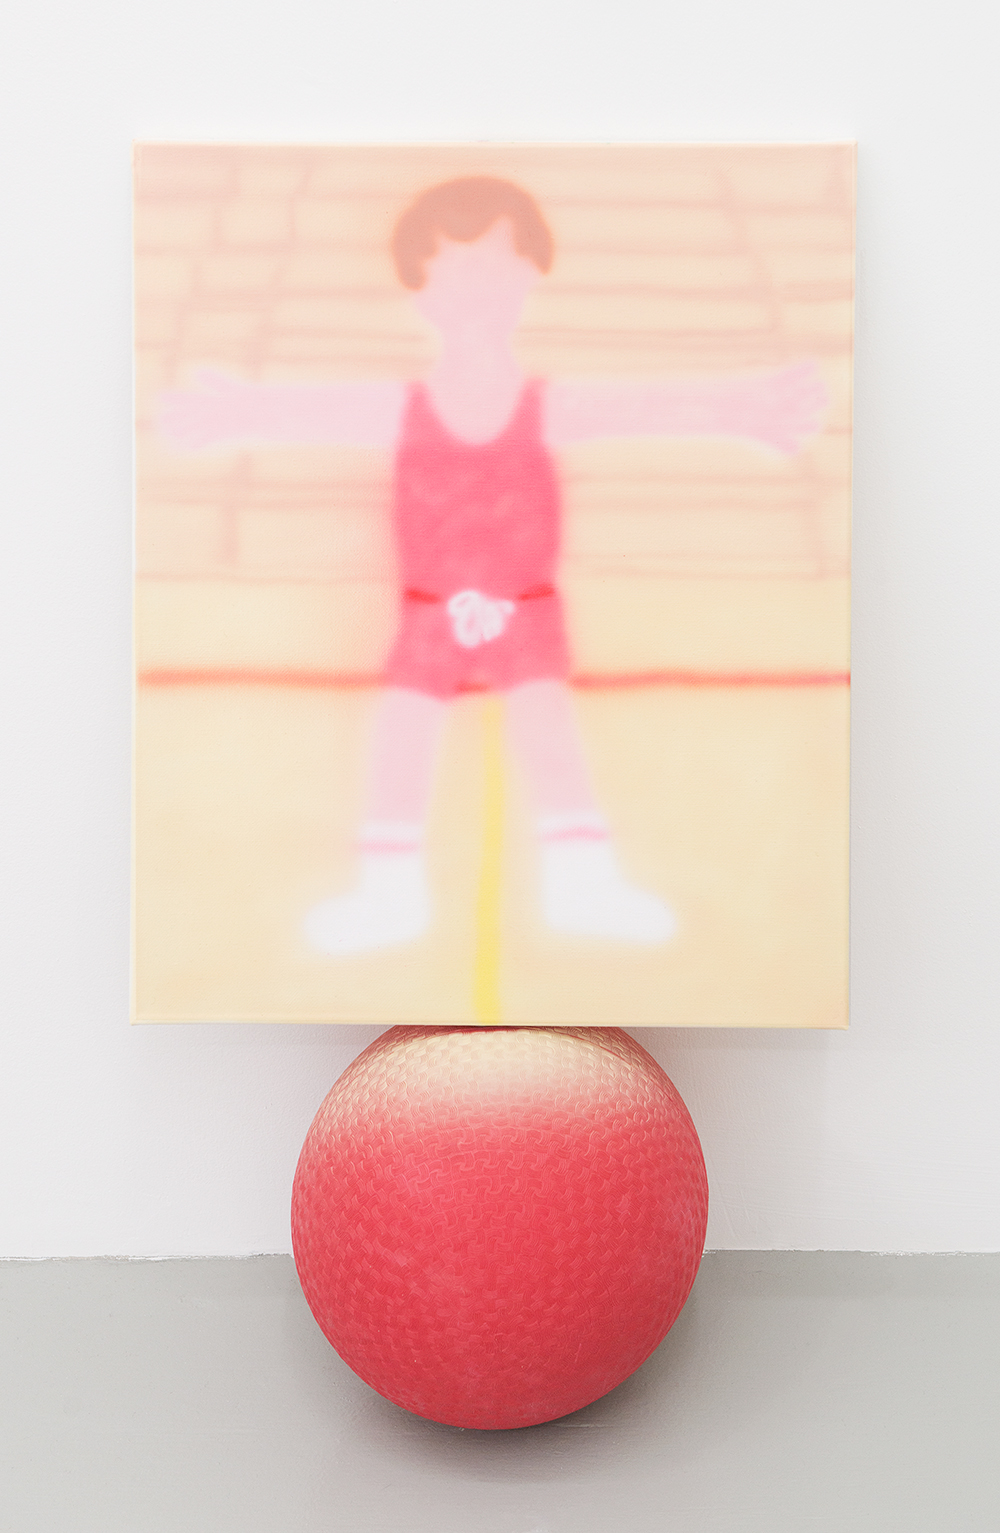 Jonny Paul Gillette goal on dodgeball ball, 2015 Acrylic polymer on canvas, dodgeball ball